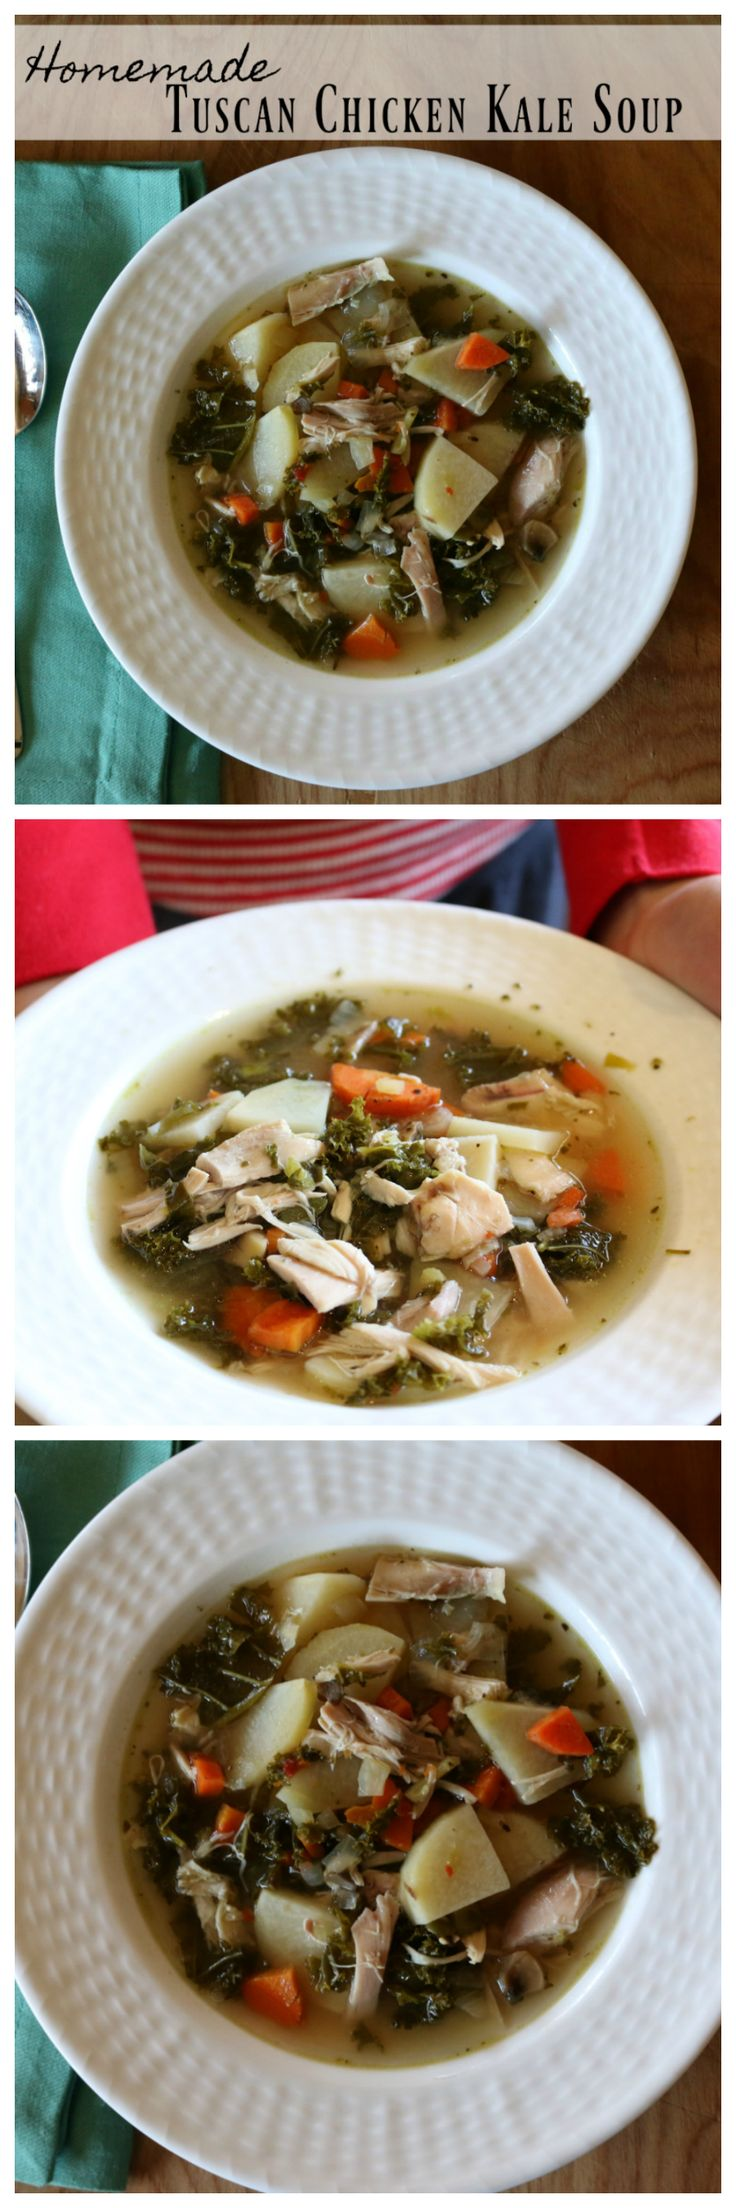 Easy Homemade Tuscan Chicken Kale Soup Recipe by CeceliasGoodStuff.com | Good Food for Good People